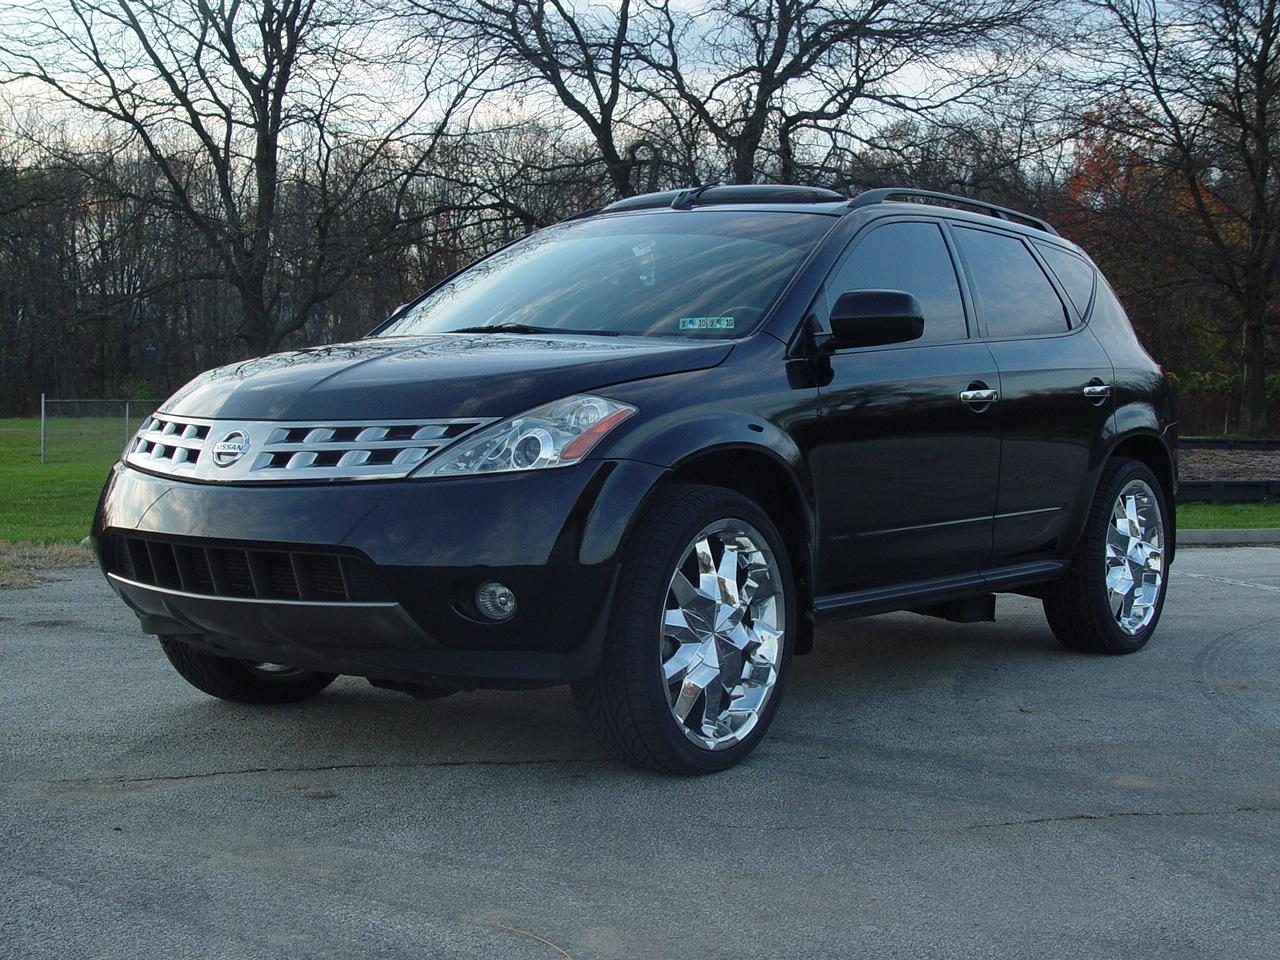 wsmith720 2004 nissan murano specs, photos, modification info at